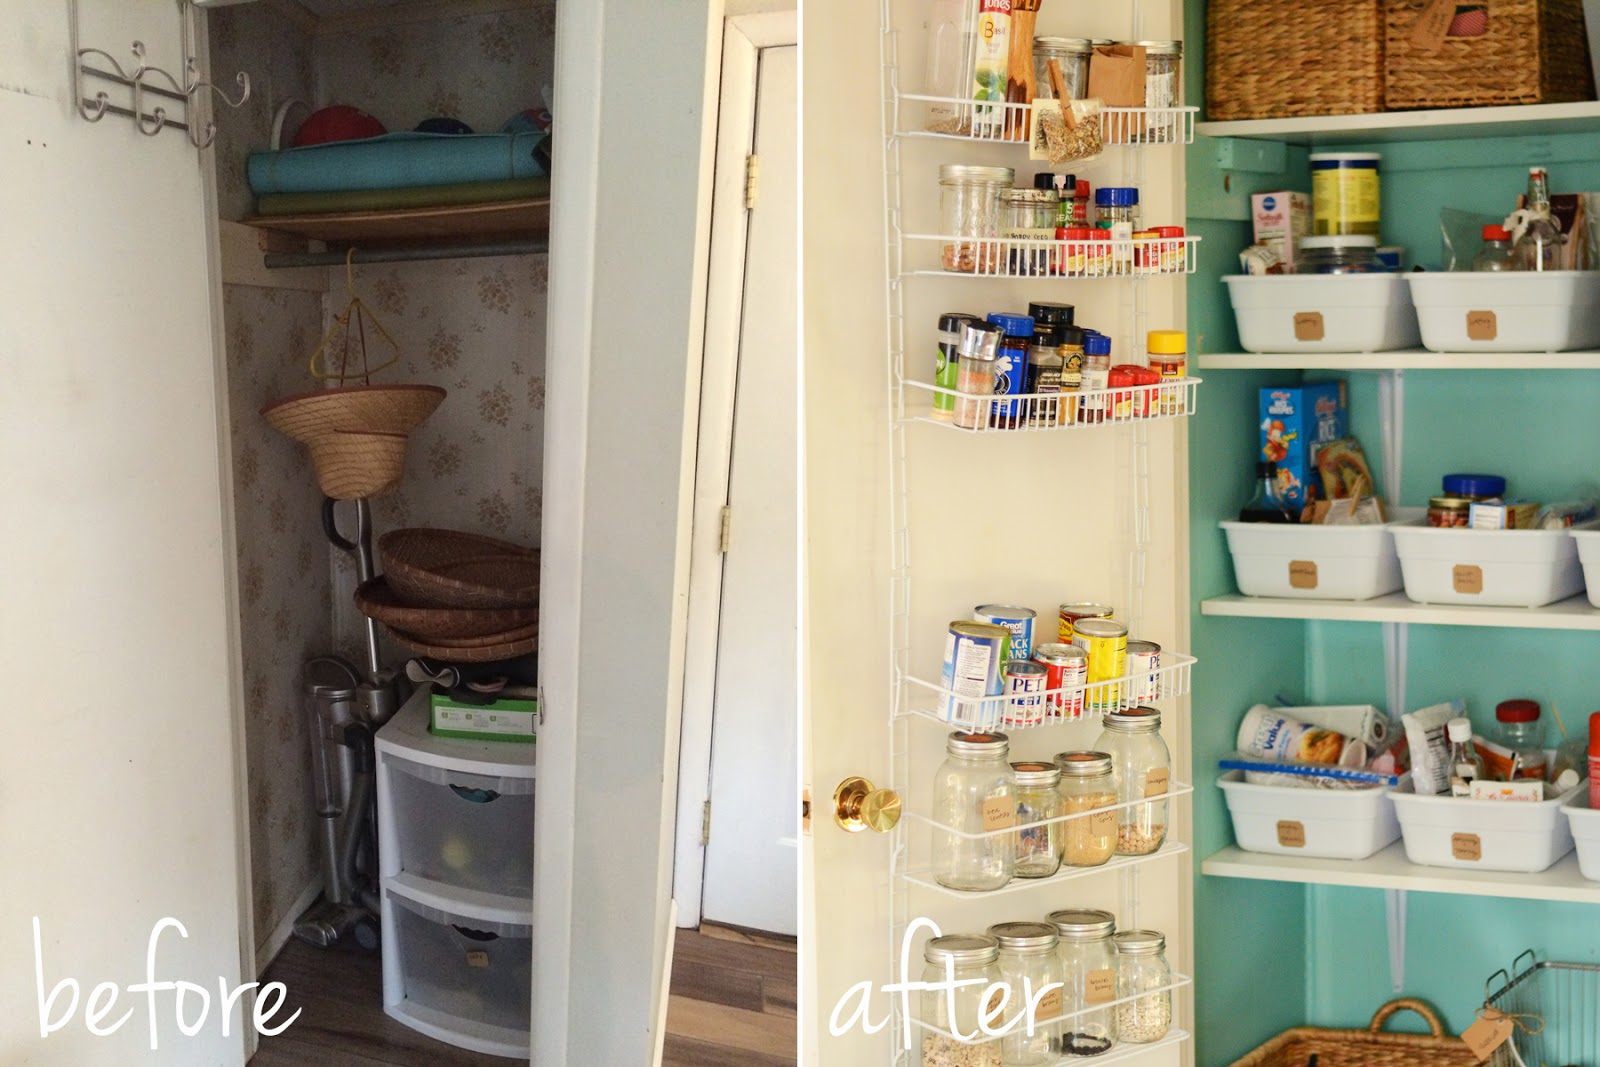 Finest natalie creates: from a coat closet to a pantry: our pantry remodel! GZ77